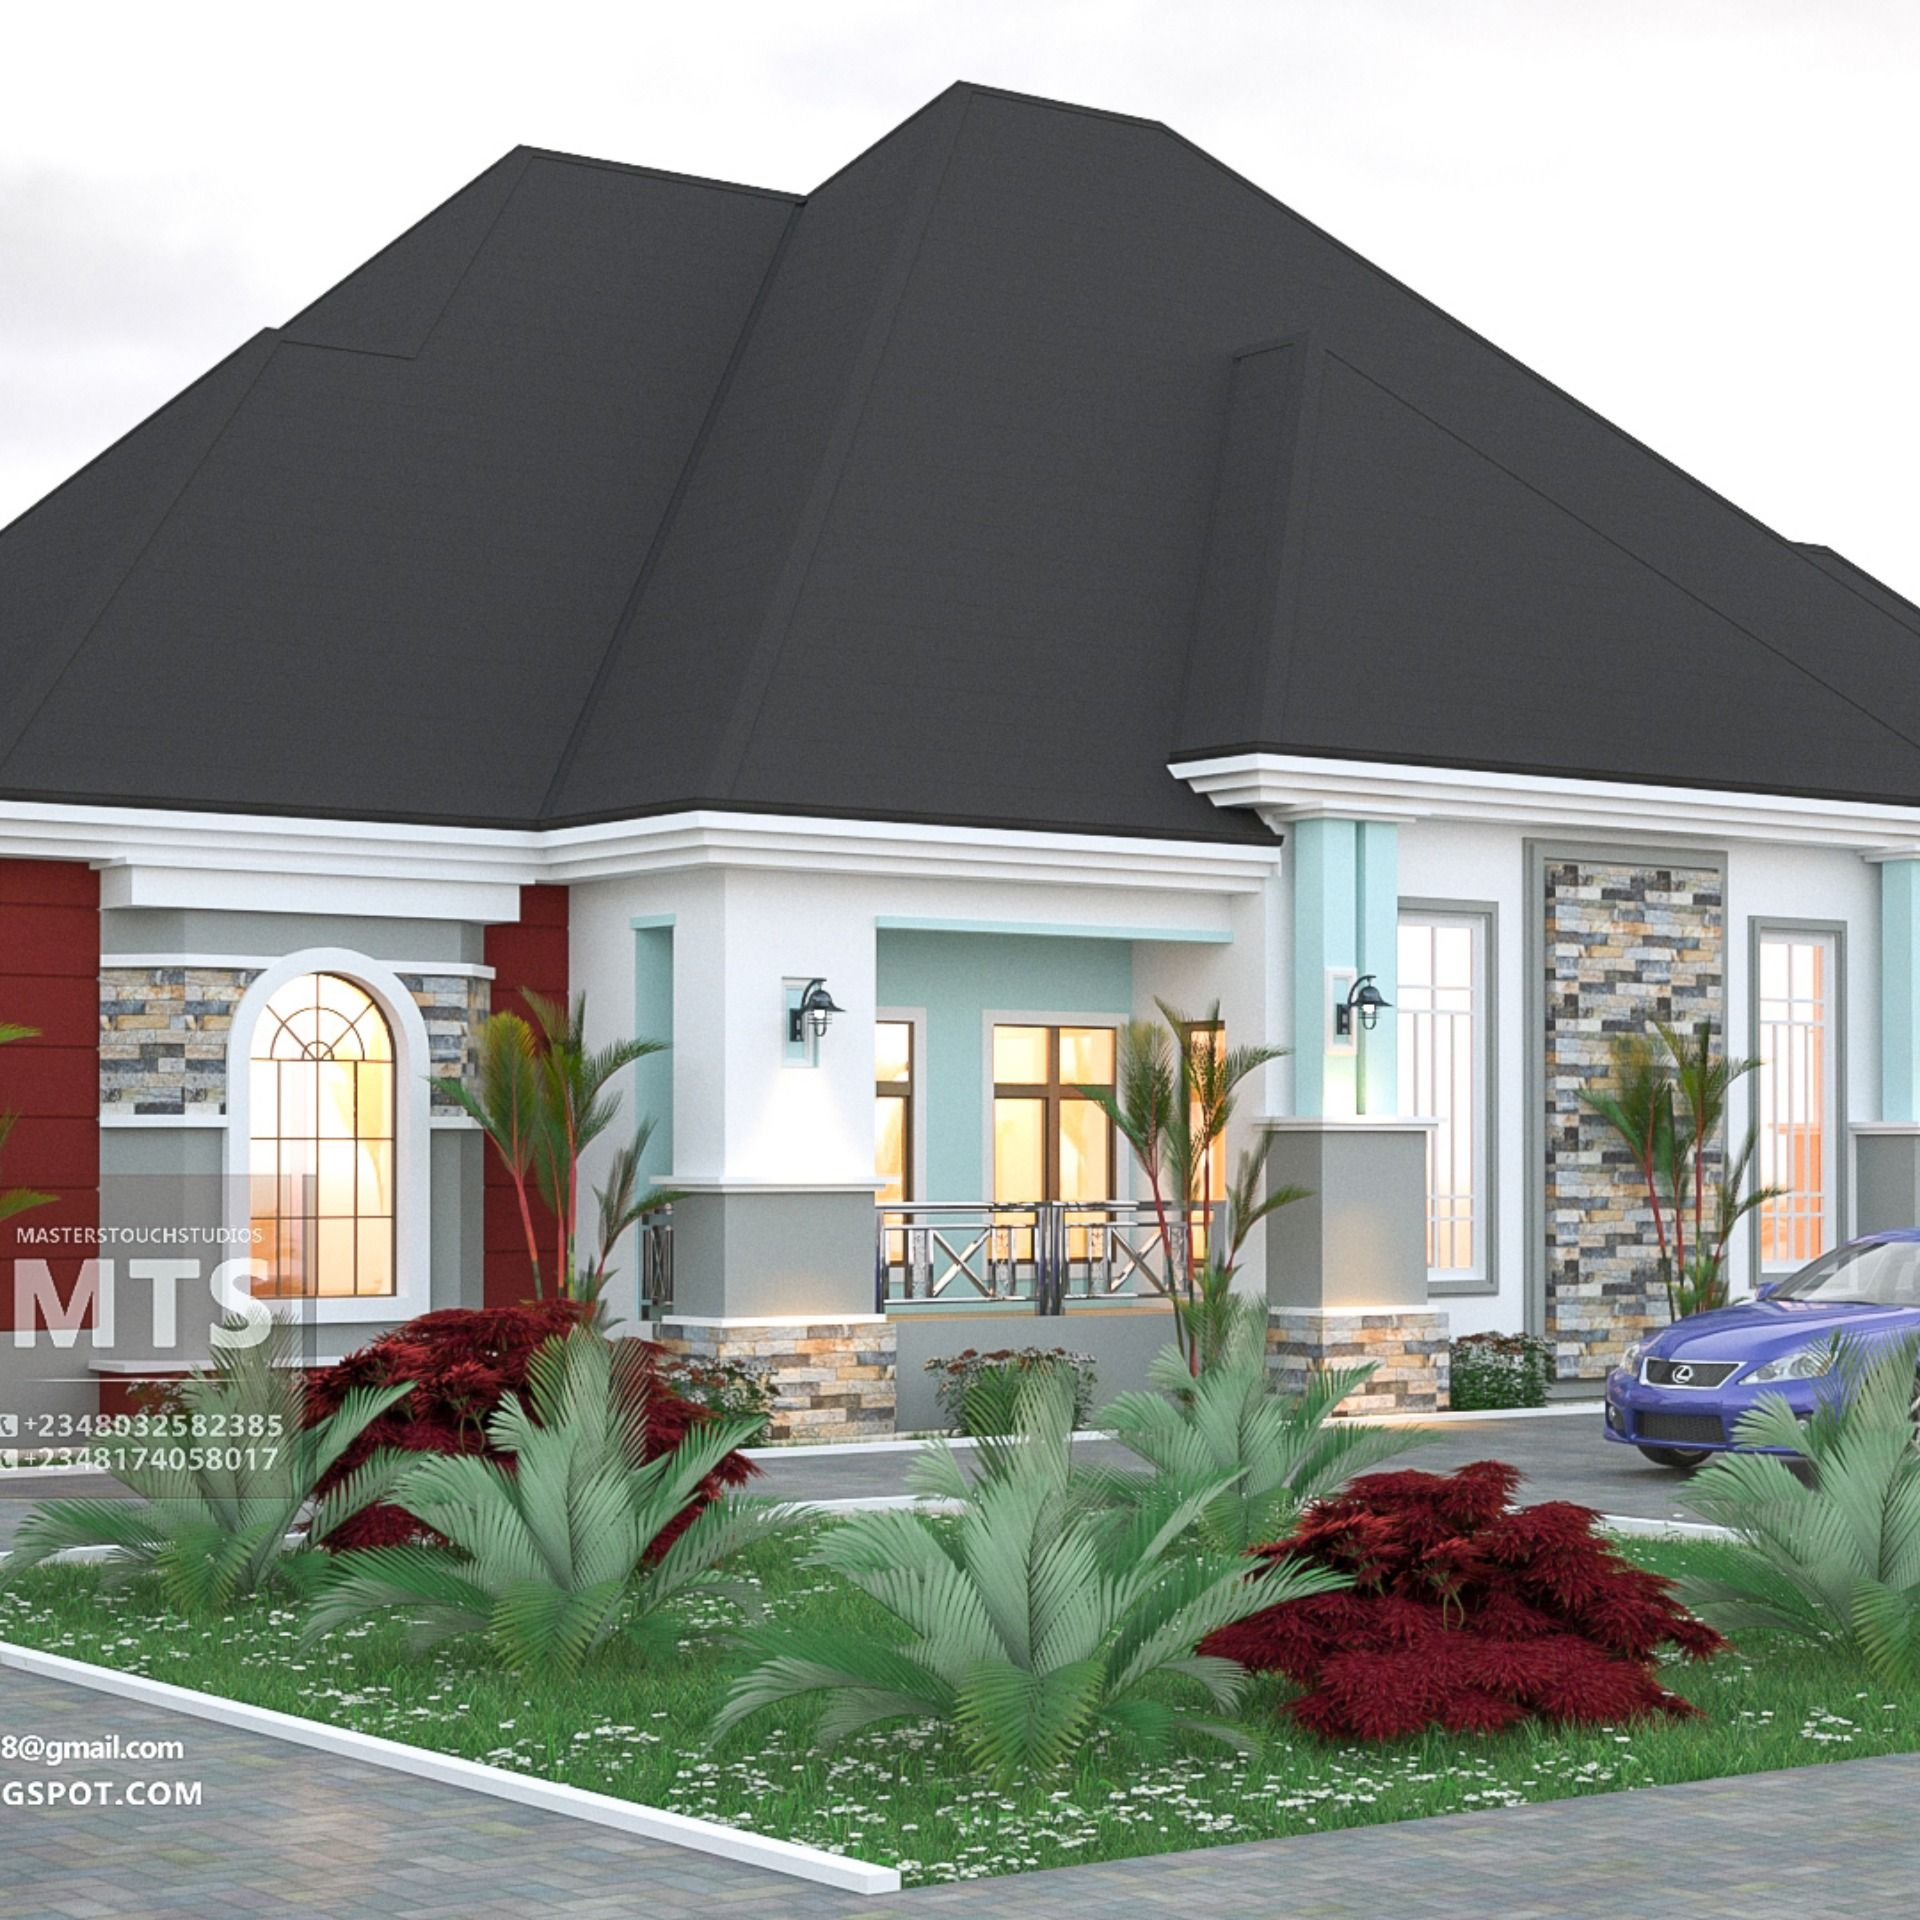 4 Bedroom Bungalow Rf 4015 Bungalow House Design House Plans Mansion House Plan Gallery